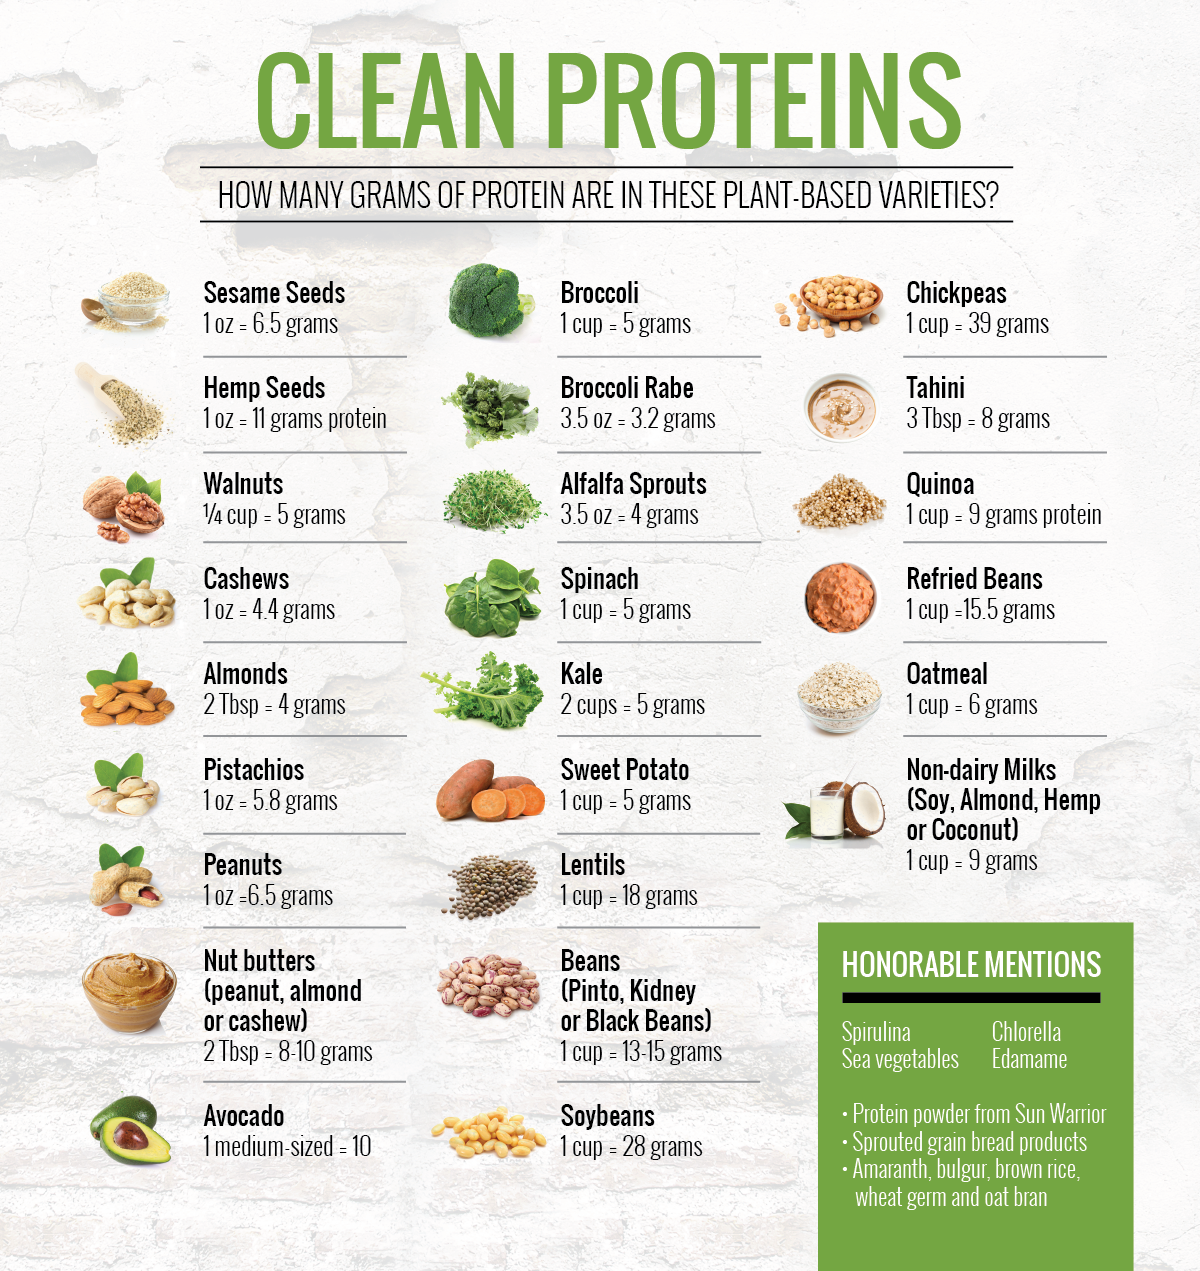 plantbasedproteins to choose from when we #eatclean! | vegan